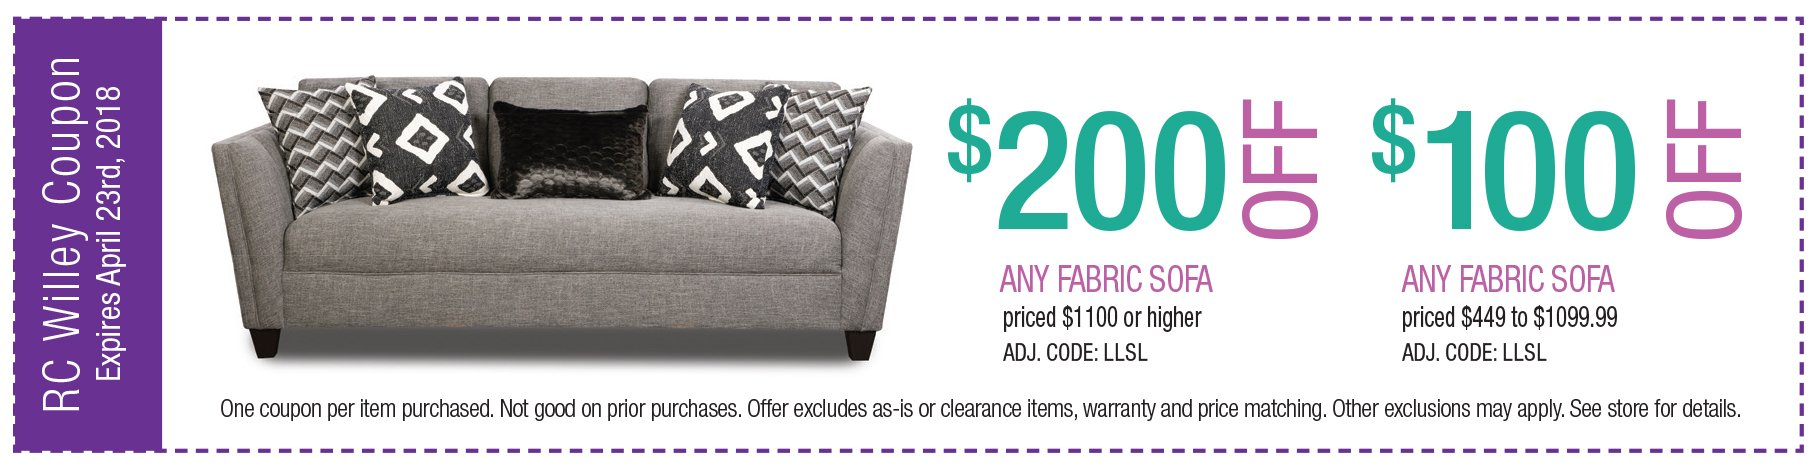 Fabric Sofa Coupon: $200 off any fabric sofa $1100 or higher.